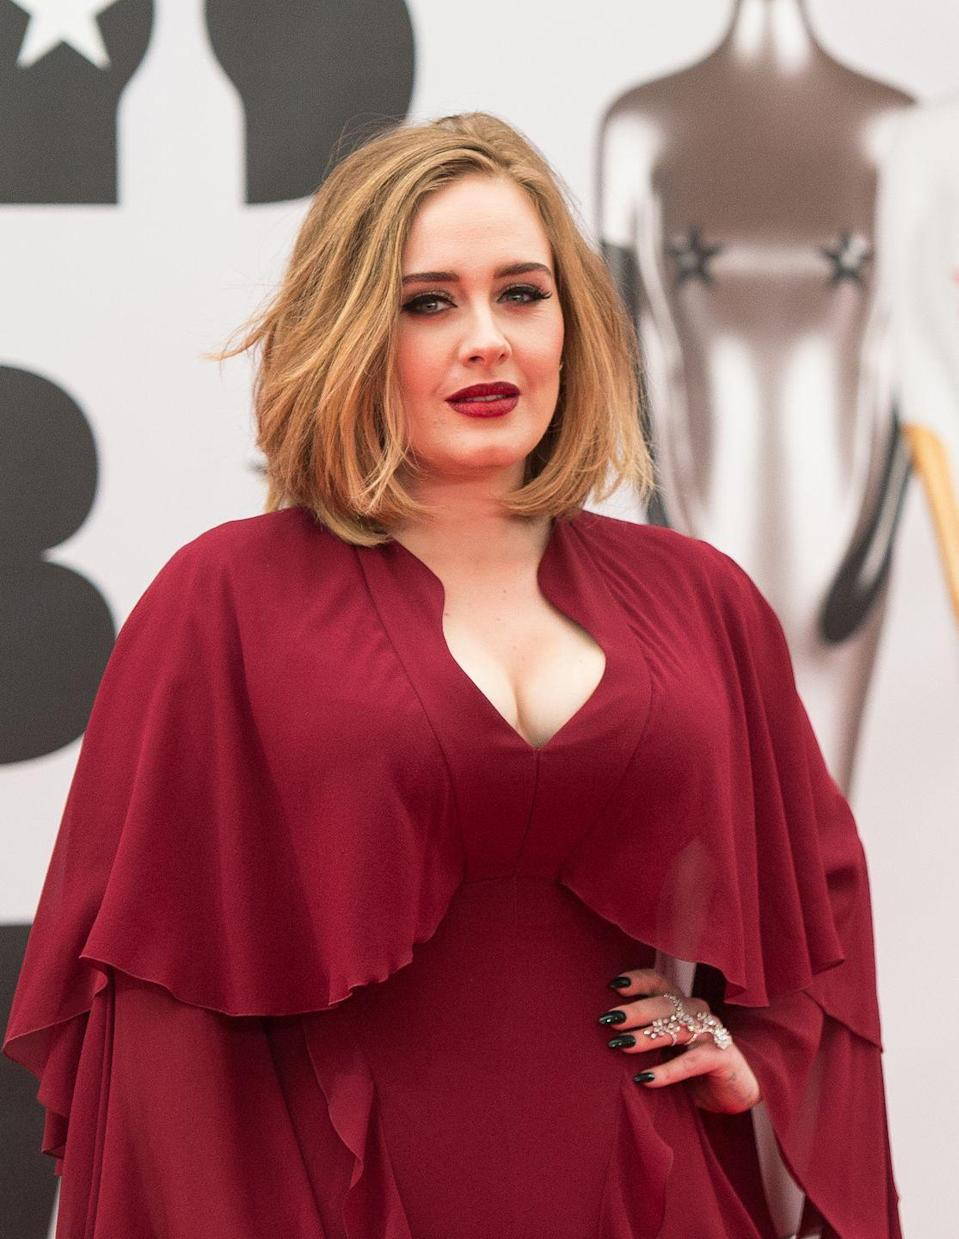 """<p>A powerhouse like Adele couldn't be kept a secret for too long. Her first song, """"Hometown Glory"""" (from the album <em>19)</em> caught on overseas before the United States took notice, thanks to her follow-up hit, """"Chasing Pavements."""" Breakups haven't been the same since.</p><p><a class=""""link rapid-noclick-resp"""" href=""""https://www.amazon.com/Hometown-Glory-Explicit/dp/B07DKXG872/ref=sr_1_2?keywords=hometown+glory&qid=1579127651&sr=8-2&tag=syn-yahoo-20&ascsubtag=%5Bartid%7C10063.g.30535280%5Bsrc%7Cyahoo-us"""" rel=""""nofollow noopener"""" target=""""_blank"""" data-ylk=""""slk:BUY NOW"""">BUY NOW</a></p>"""